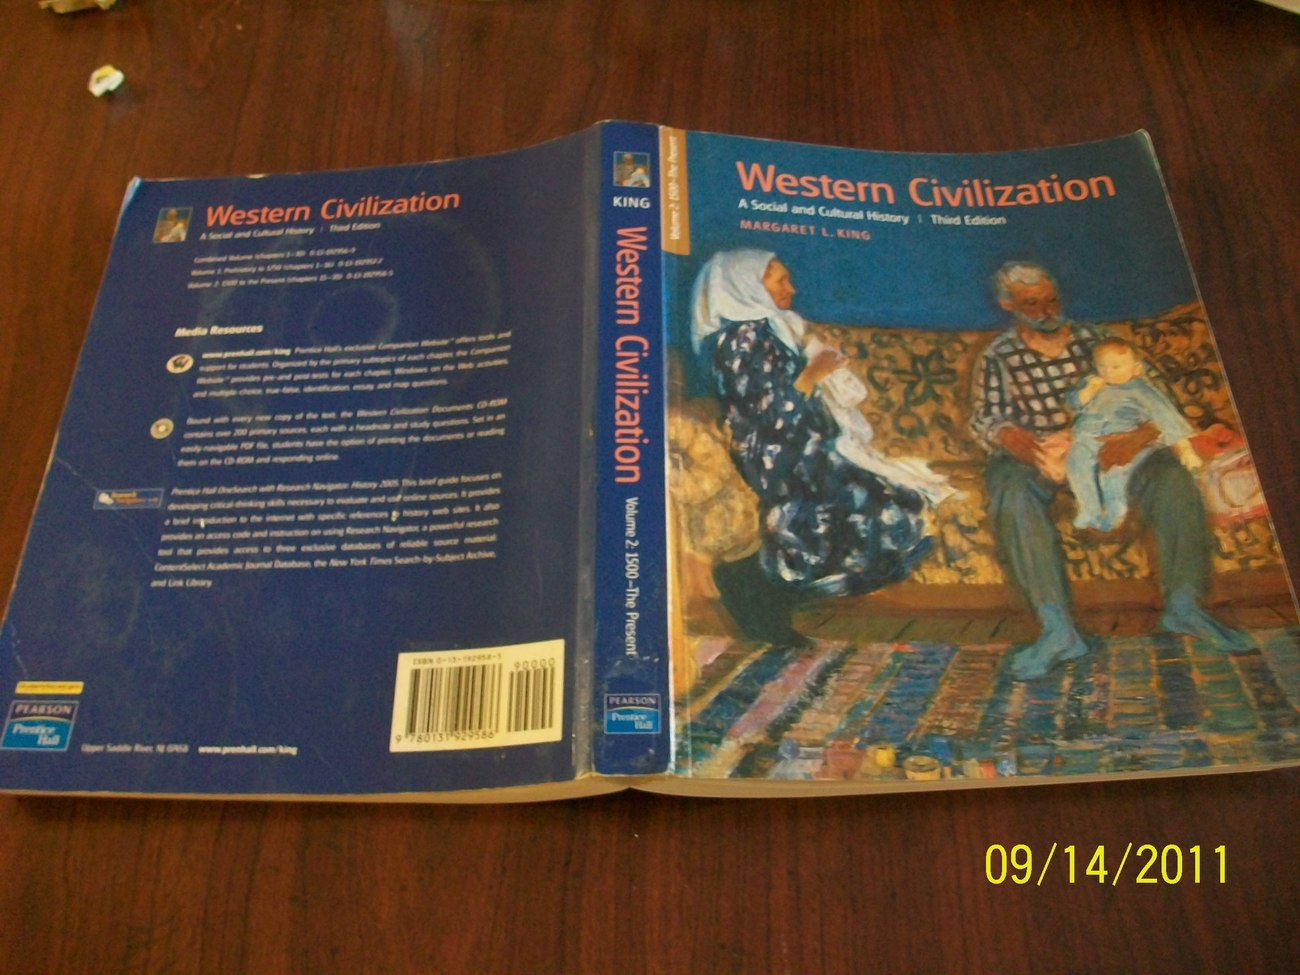 Western Civilization A Social and Cultural History King 3rd